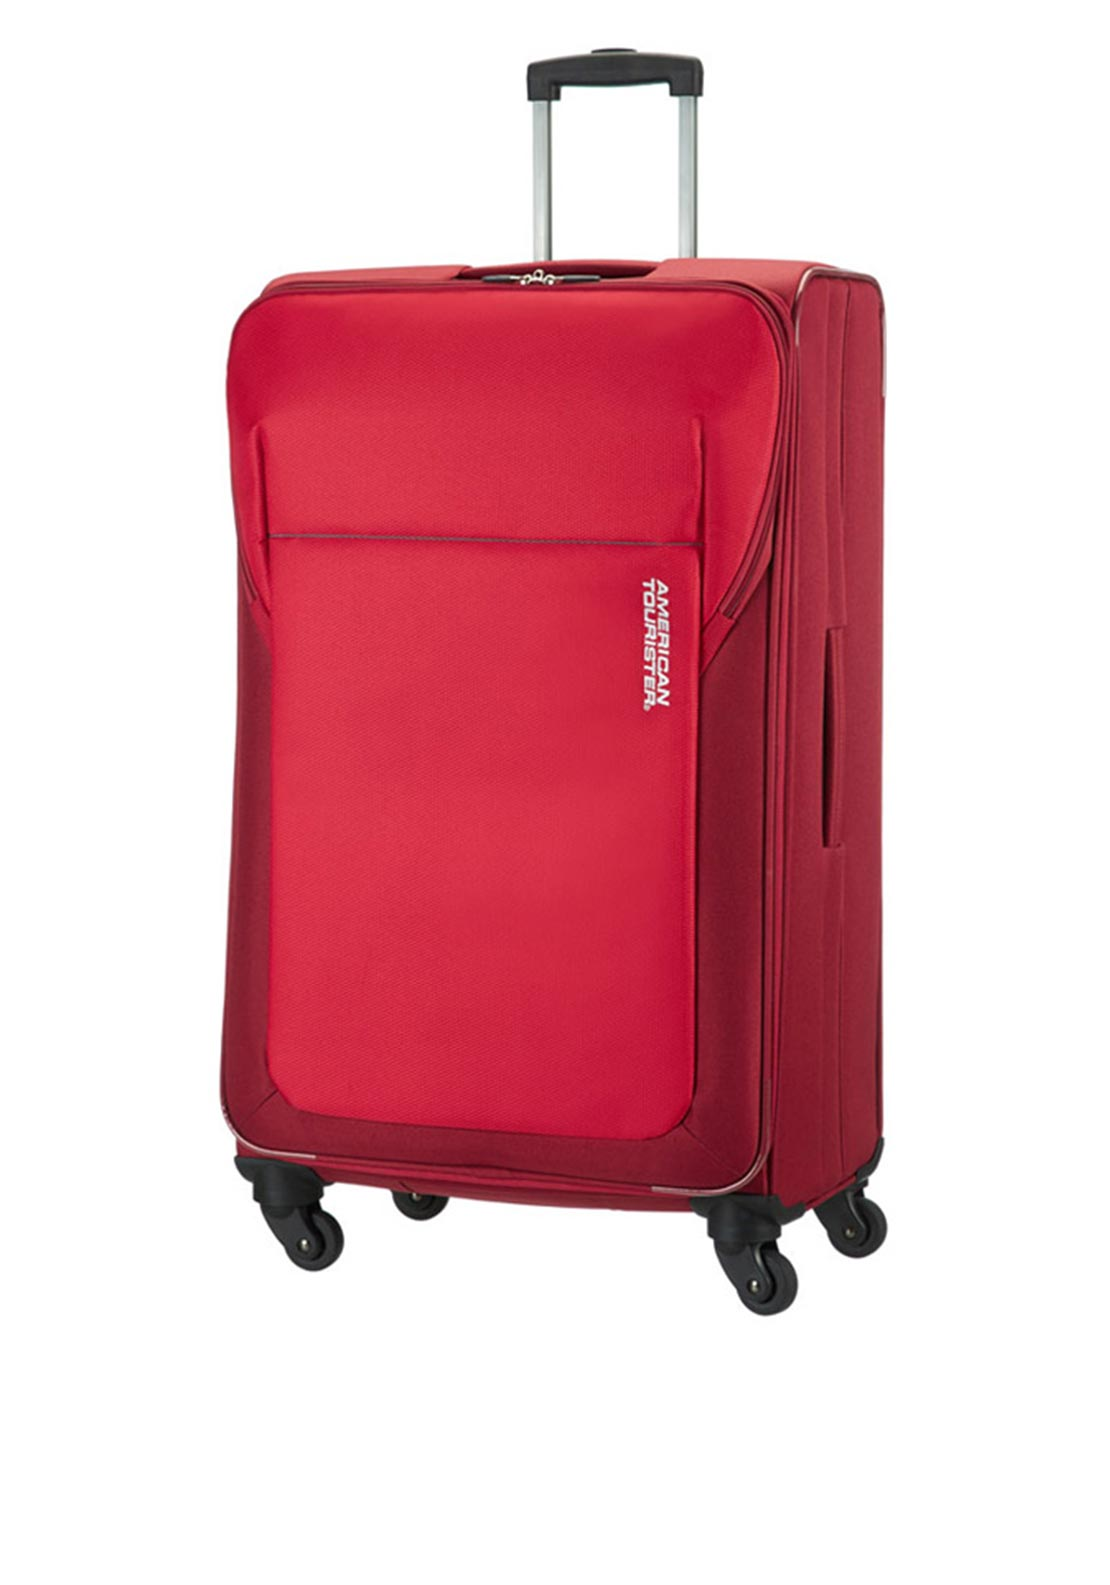 American Tourister San Francisco Spinner Large Suitcase, Red